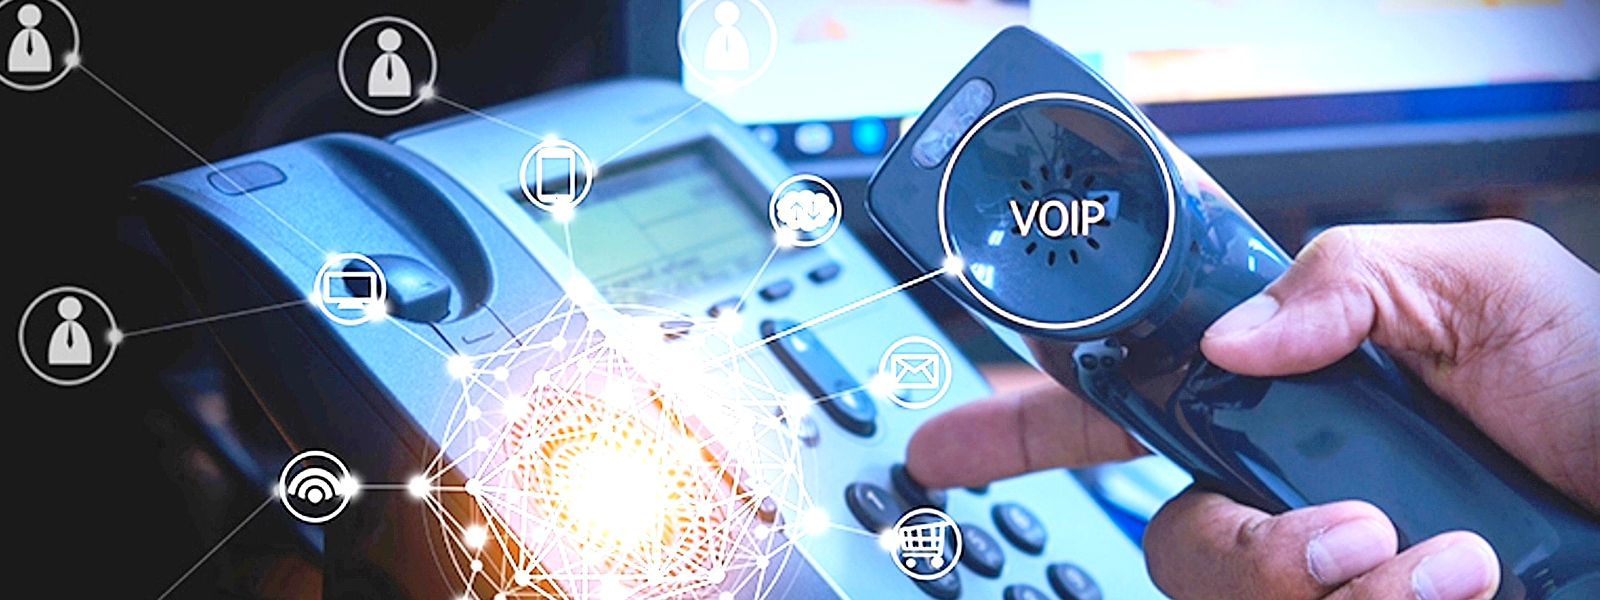 VoIP communications systems